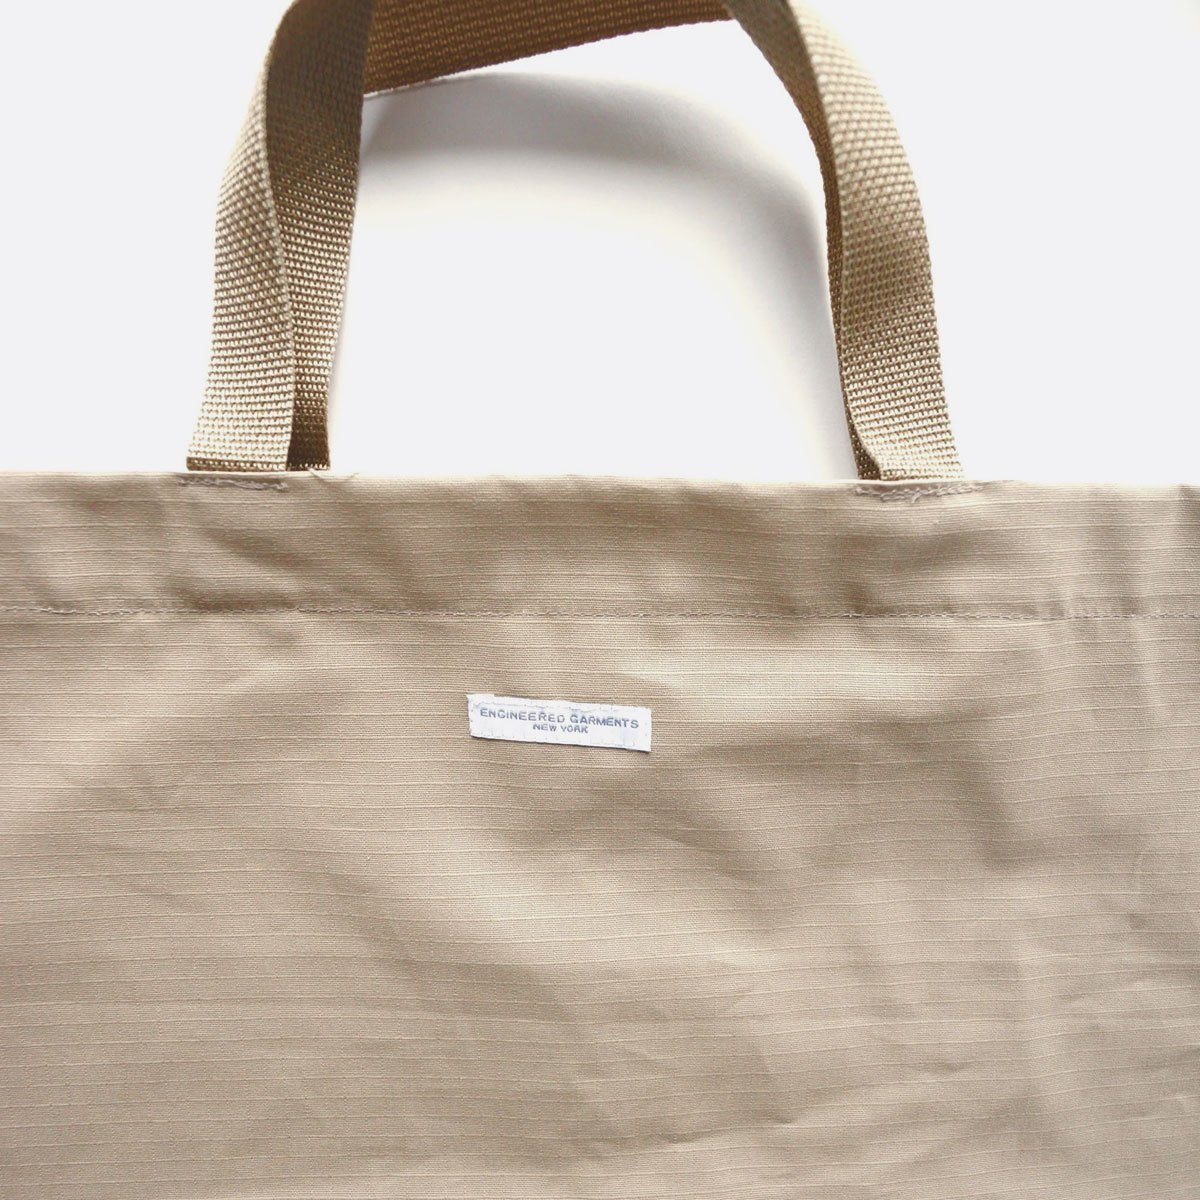 Engineered Garments Carry All Tote -Cotton Ripstop (Khaki)3